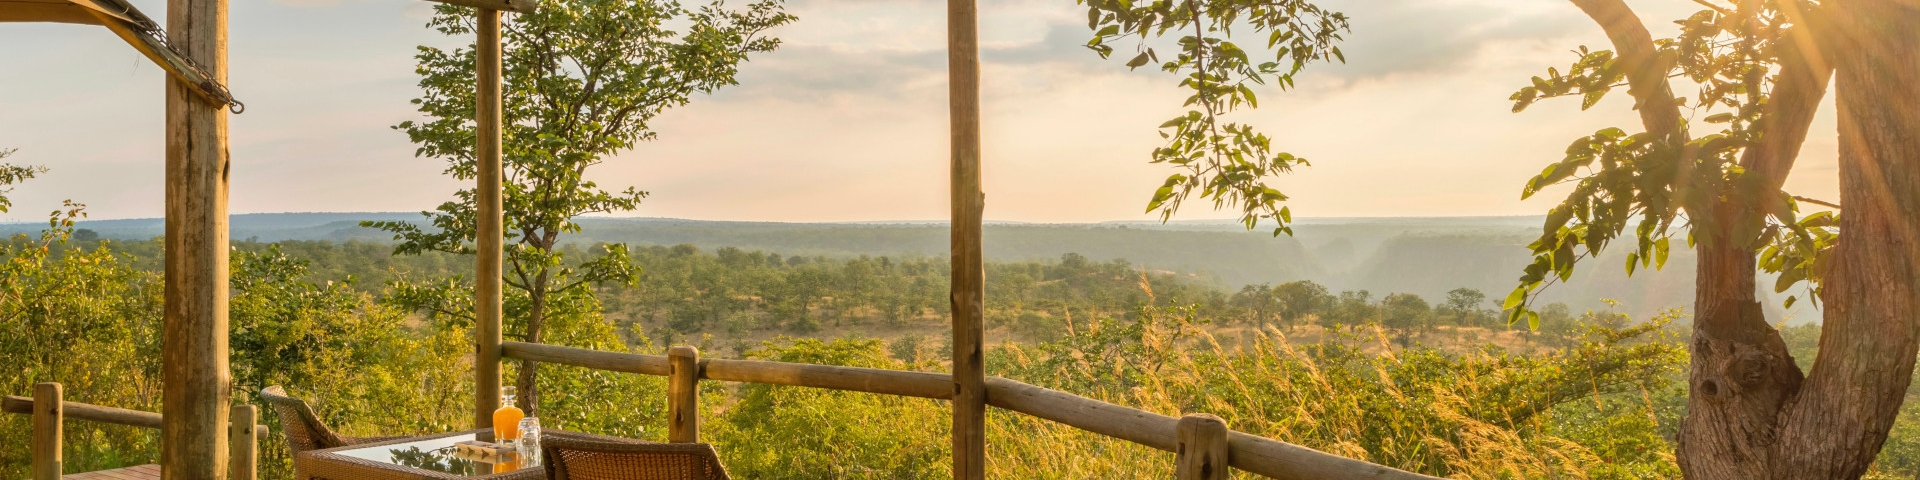 Pay 2 Stay 3 Special - The Elephant Camp - Vic Falls - Zimbabwe